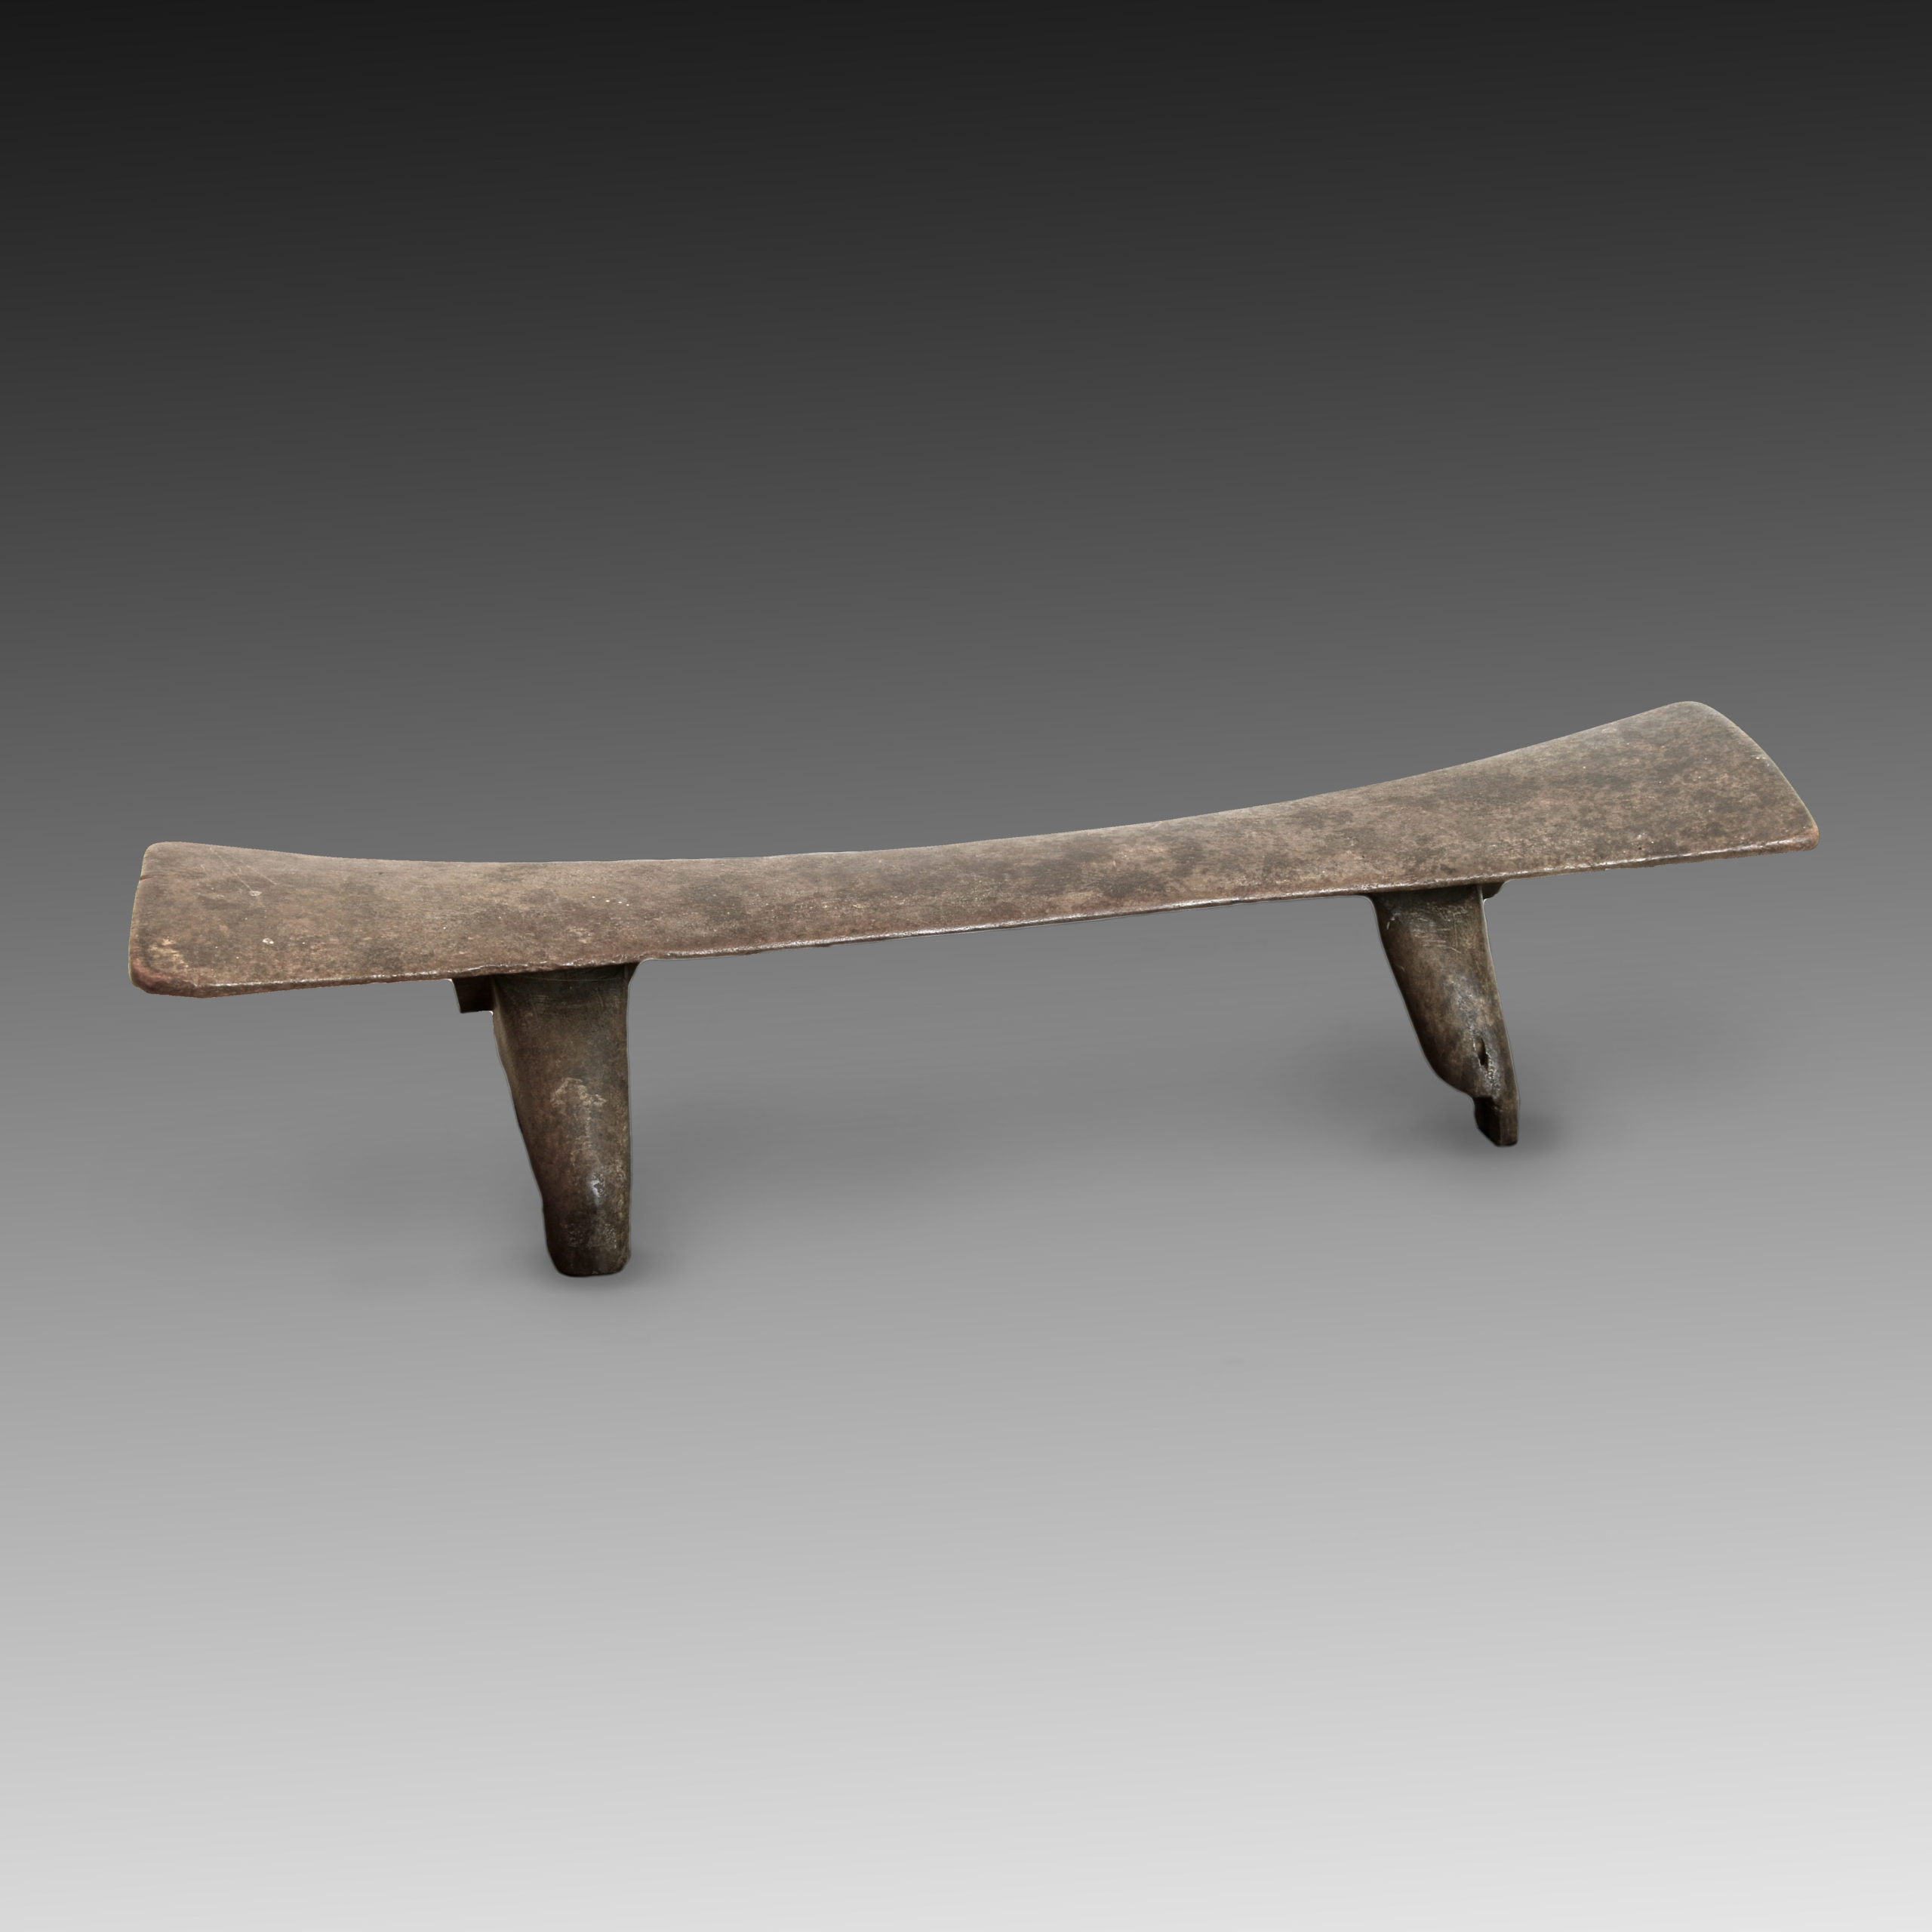 A Kali Laloni headrest, Tonga Islands